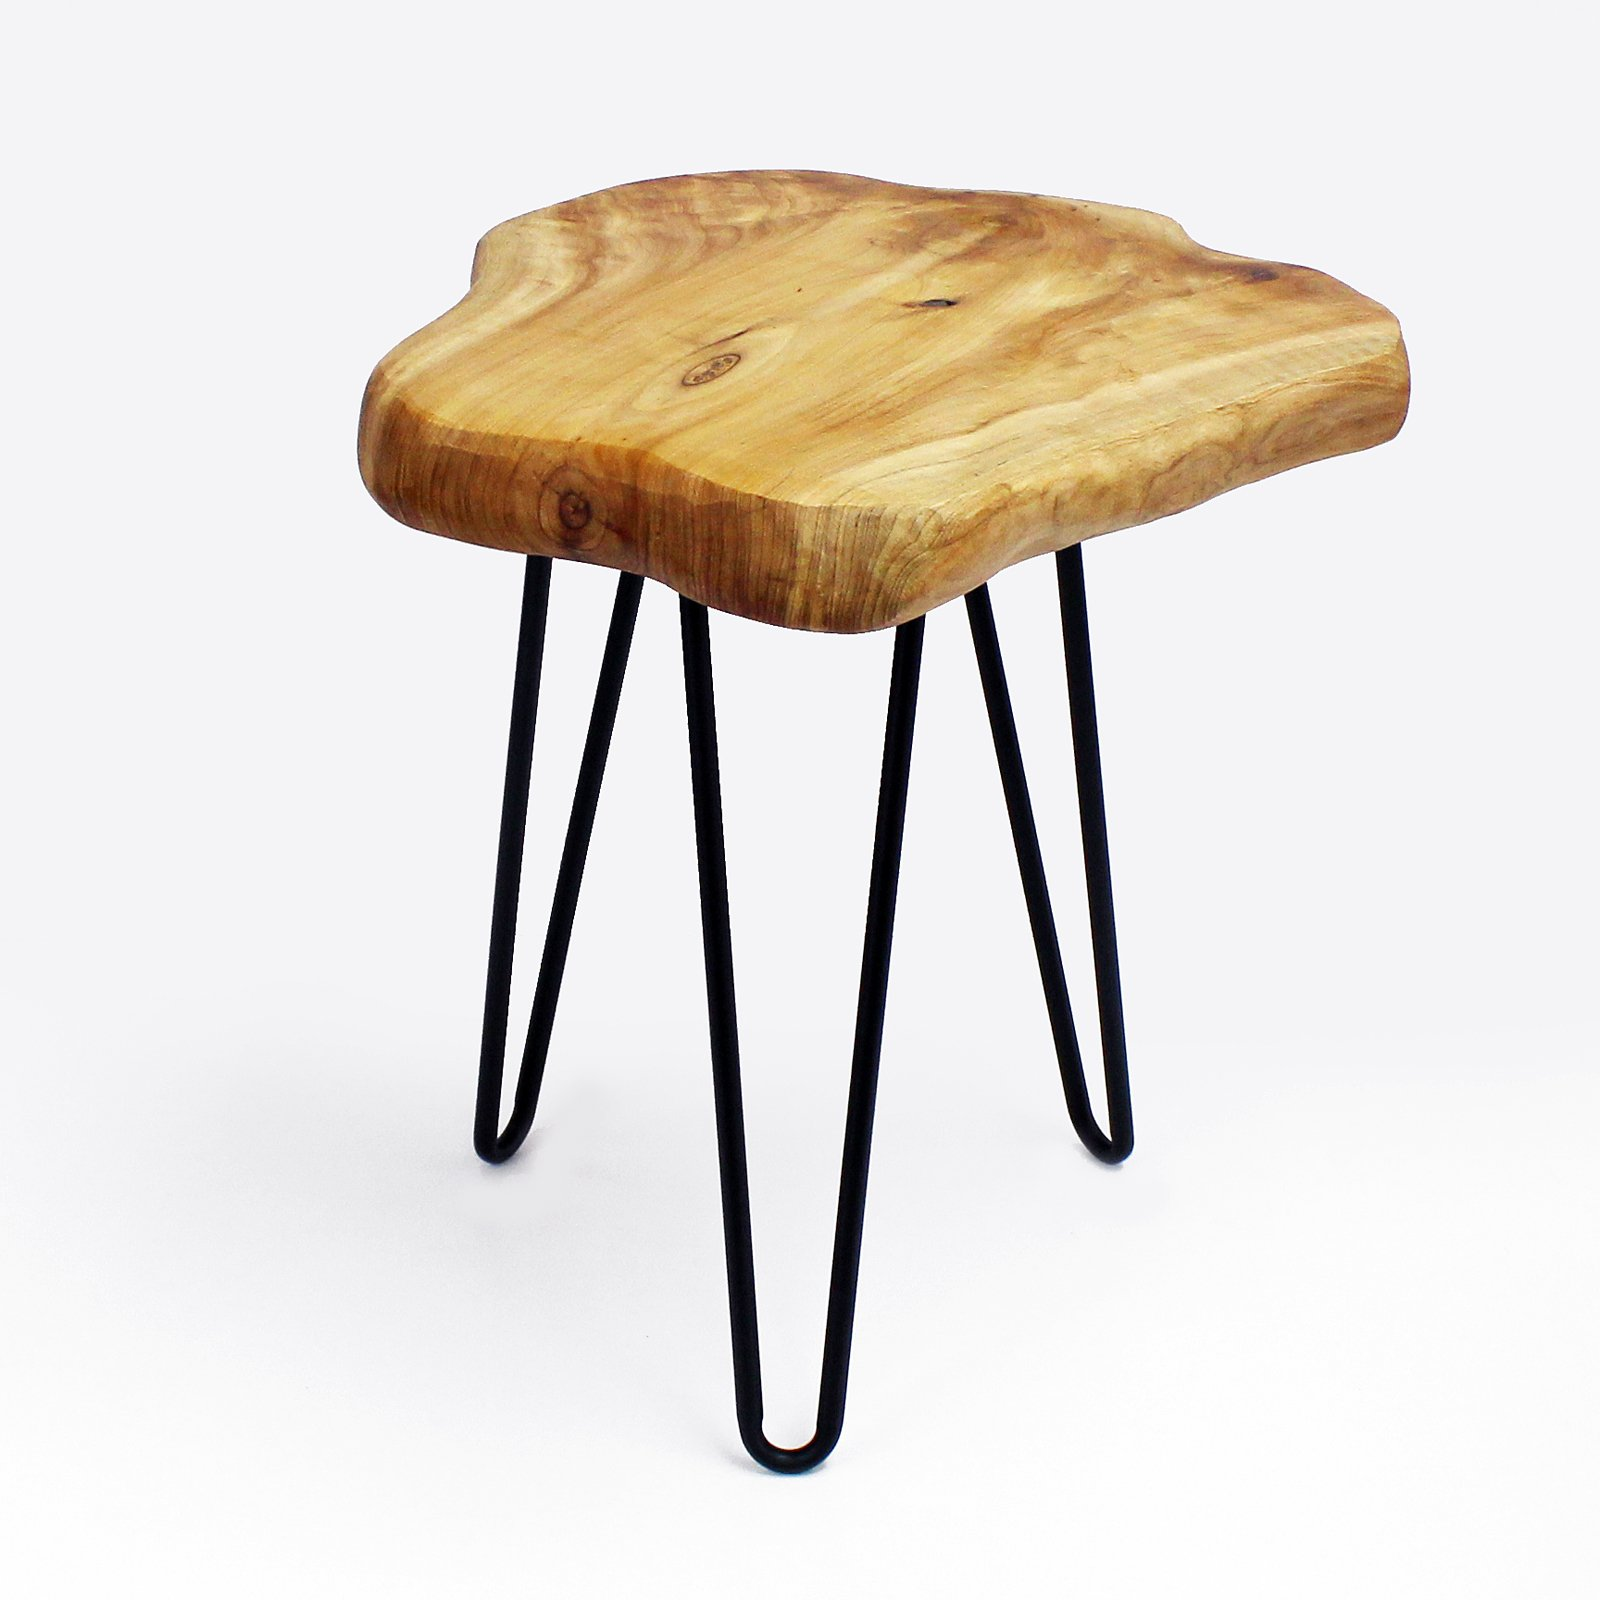 WELLAND Live Edge Side Table with Hairpin Legs, Natural Edge Side Table, Small Nightstand Wood, 15.5'' Tall by WELLAND (Image #3)